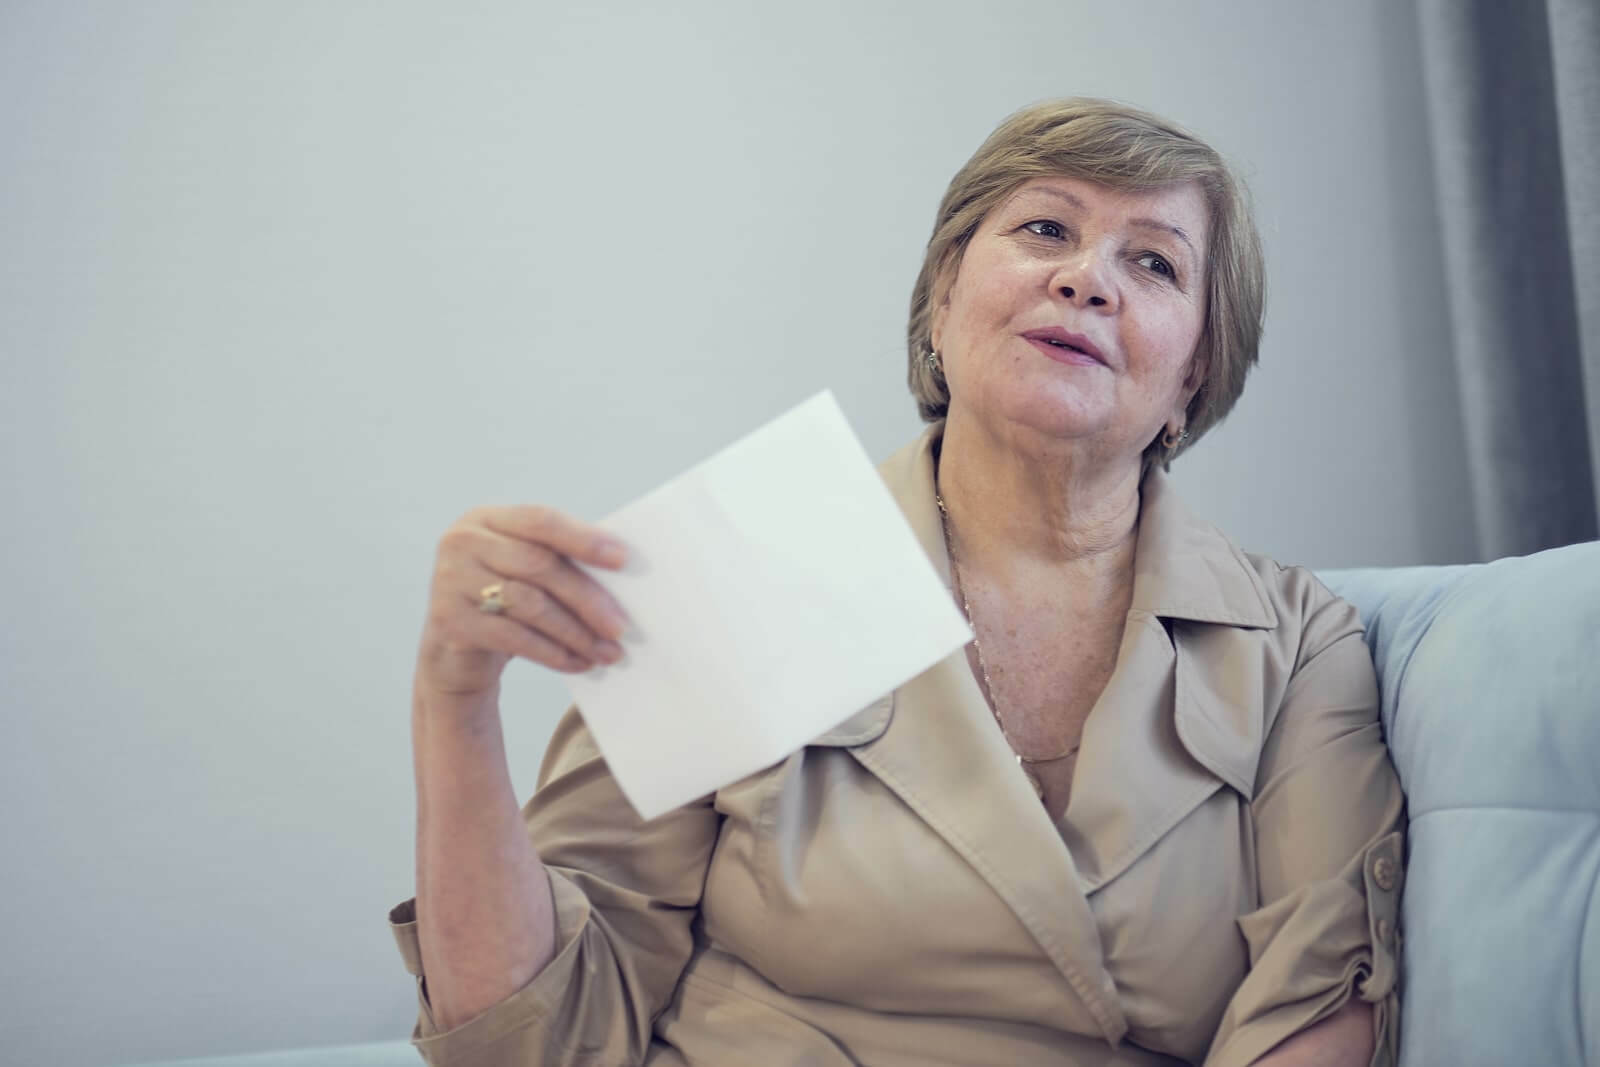 Elderly woman fanning herself with a piece of paper